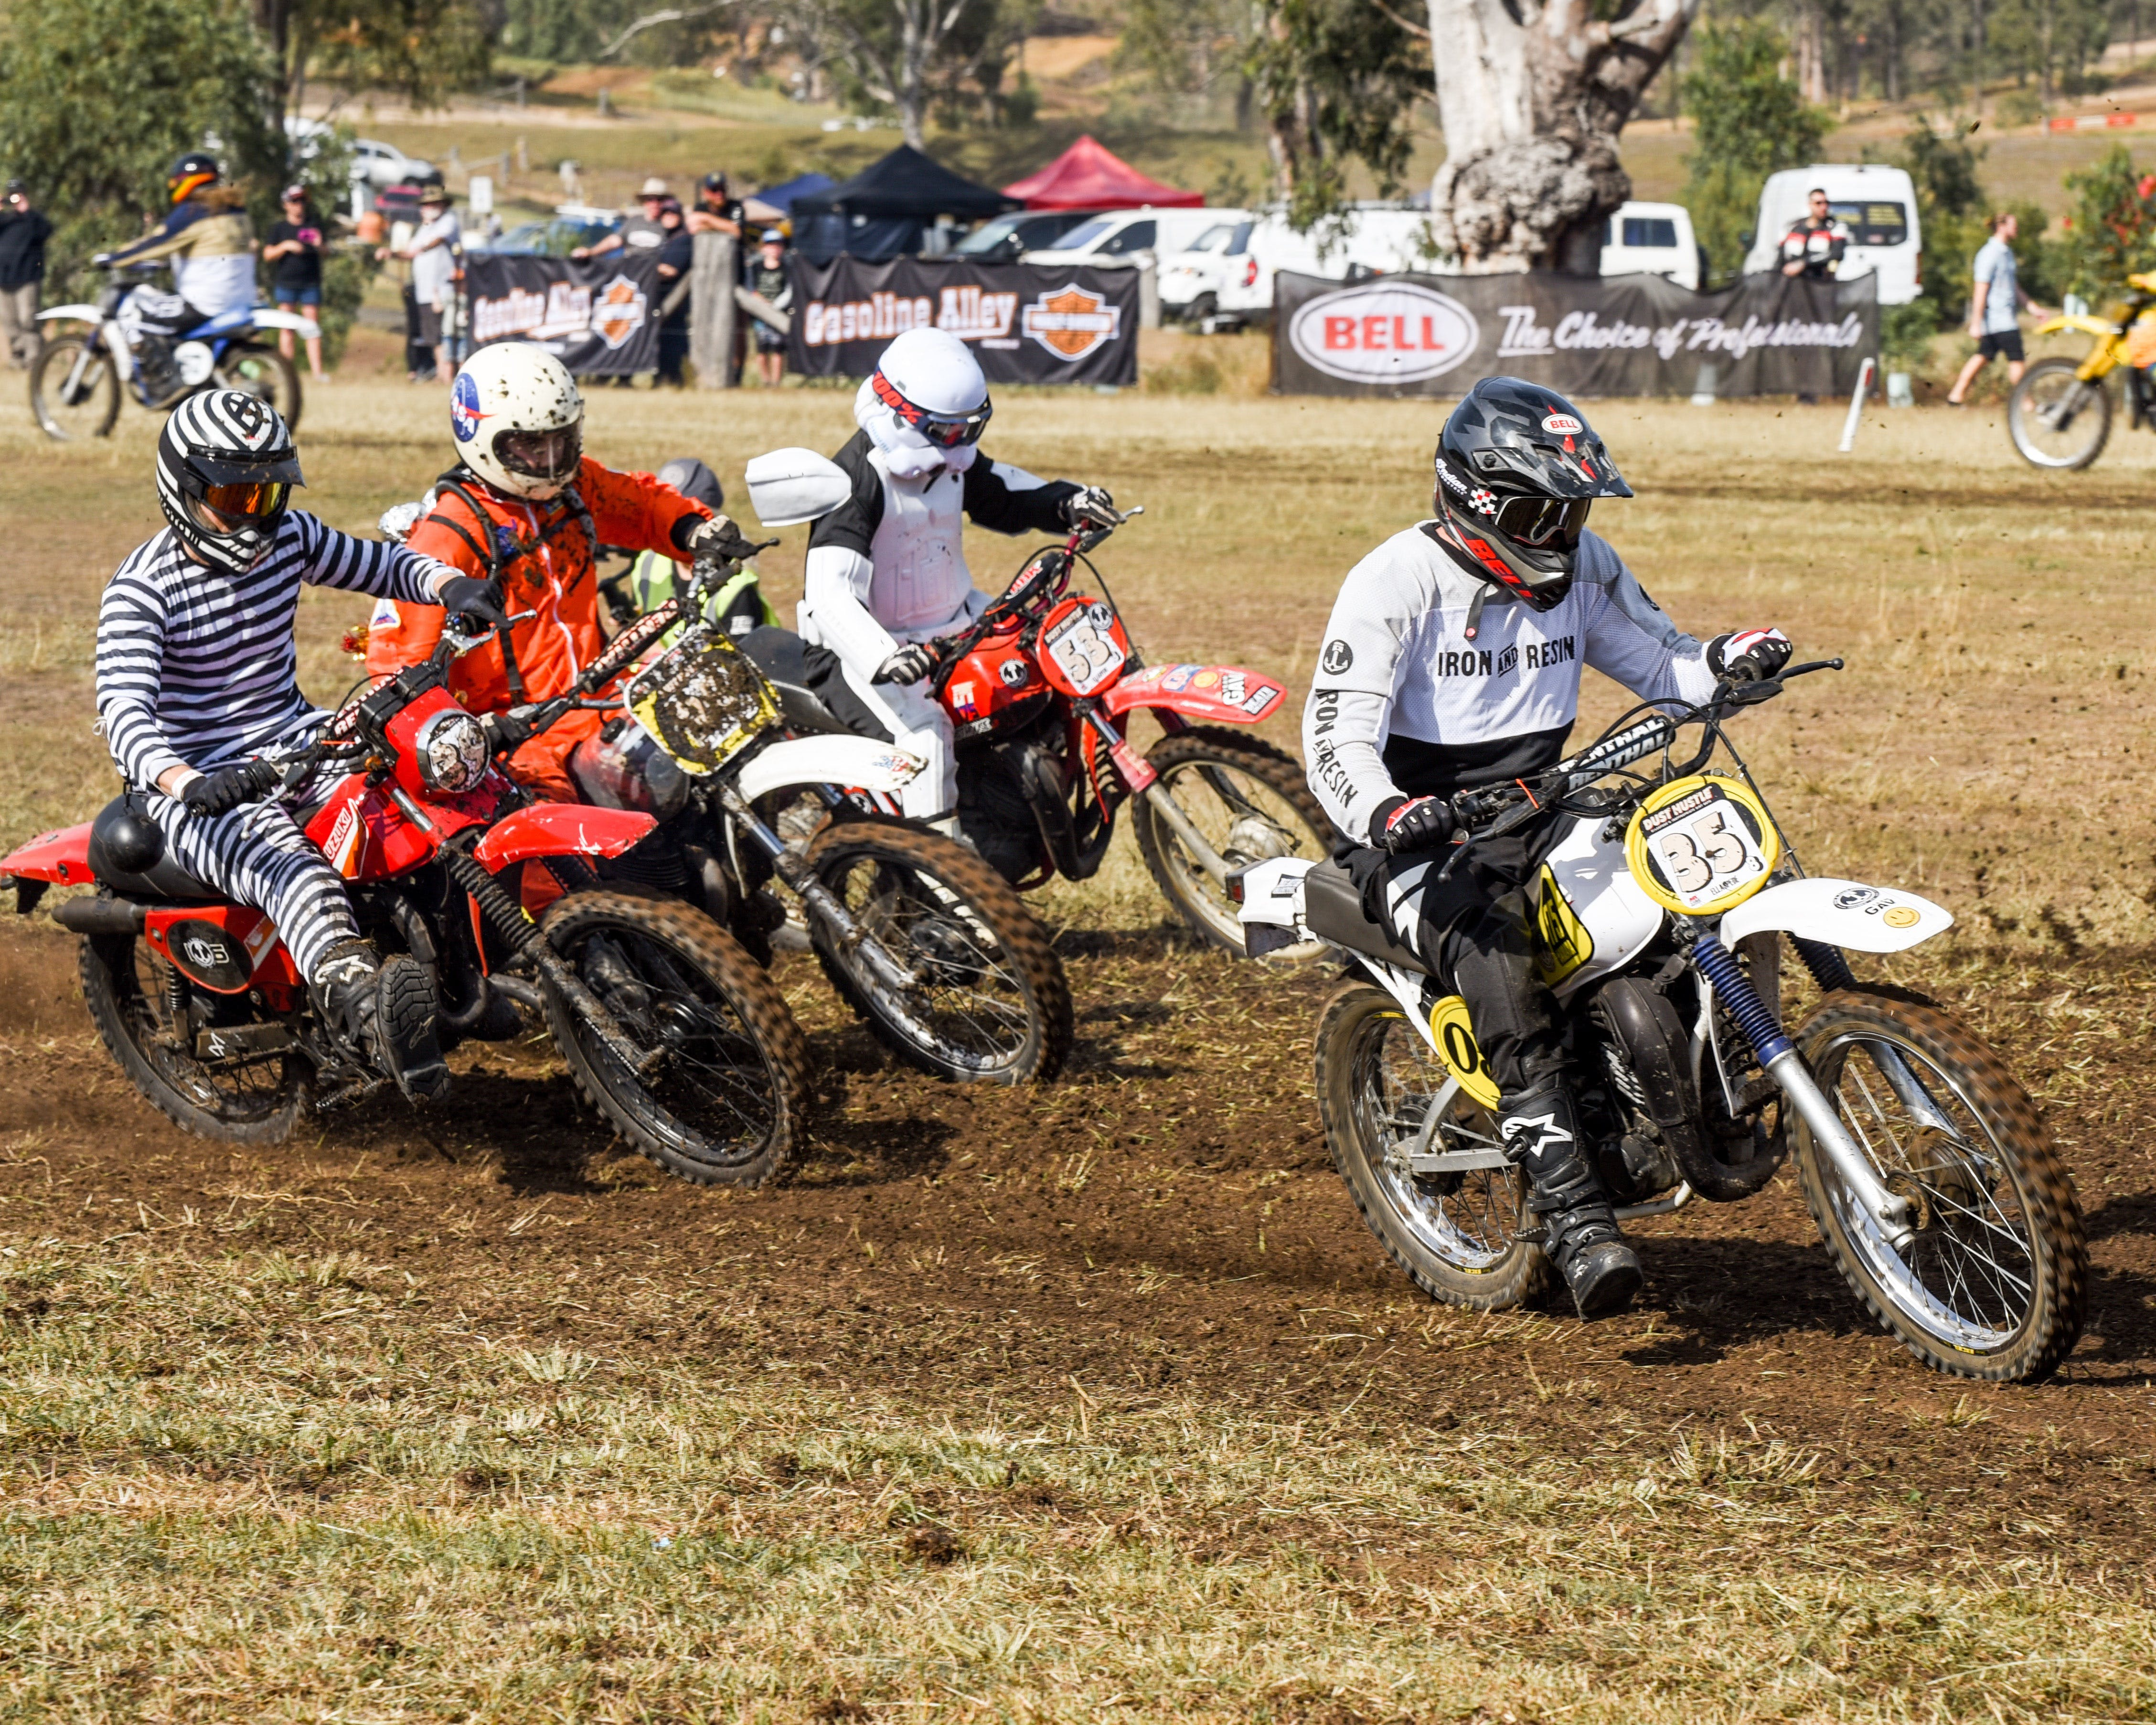 Dust Hustle Queensland Moto Park - Accommodation Sunshine Coast